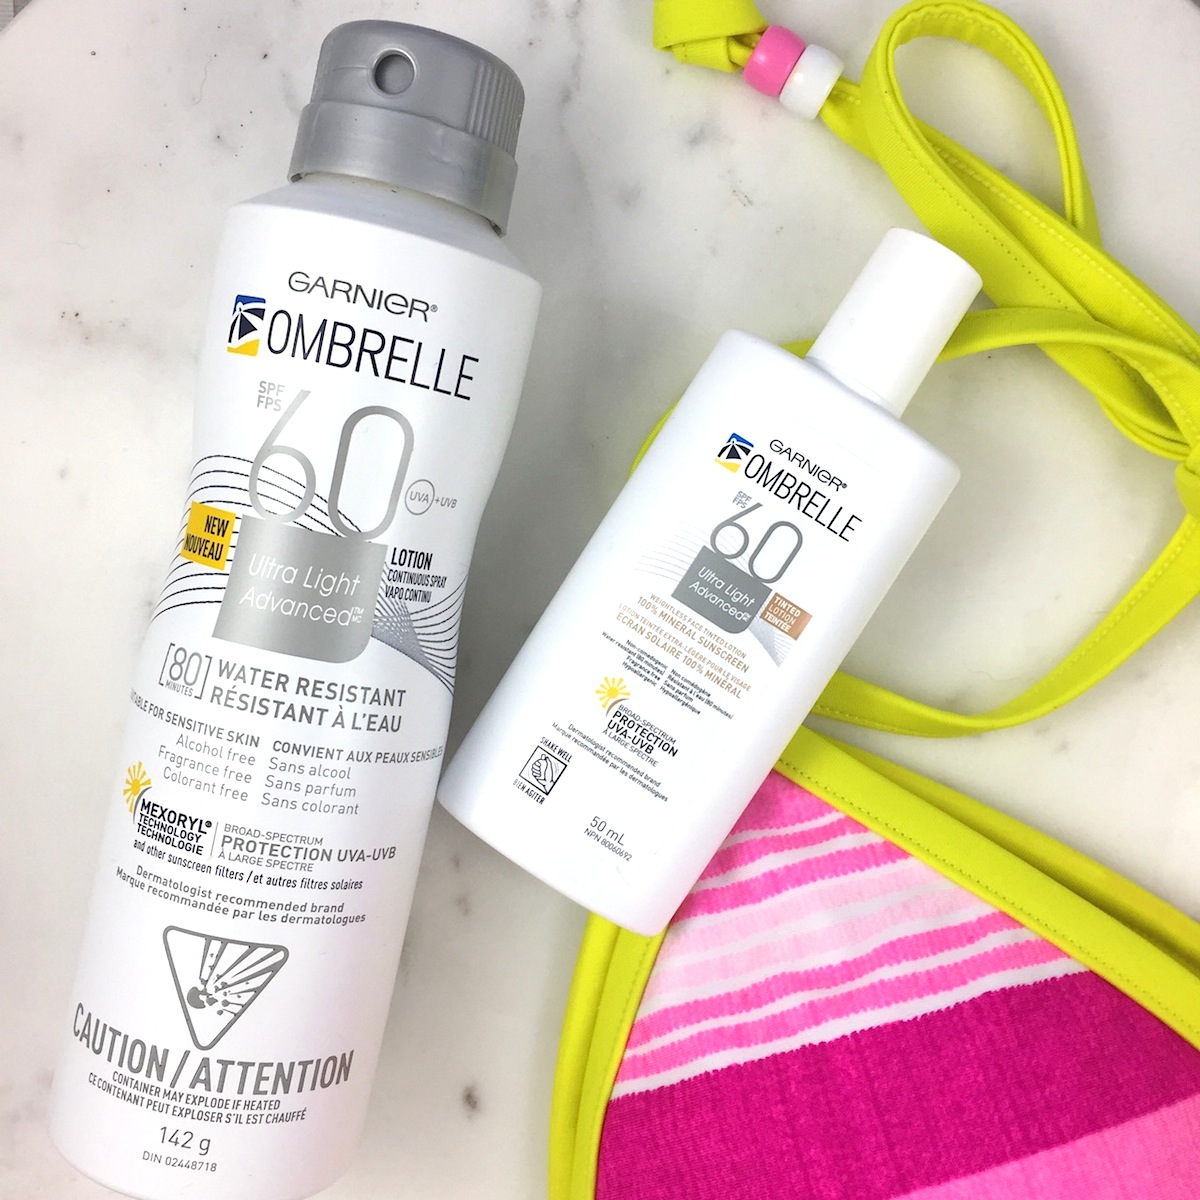 Ombrelle Ultra Light Advanced Sunscreen for face and body: A quick review